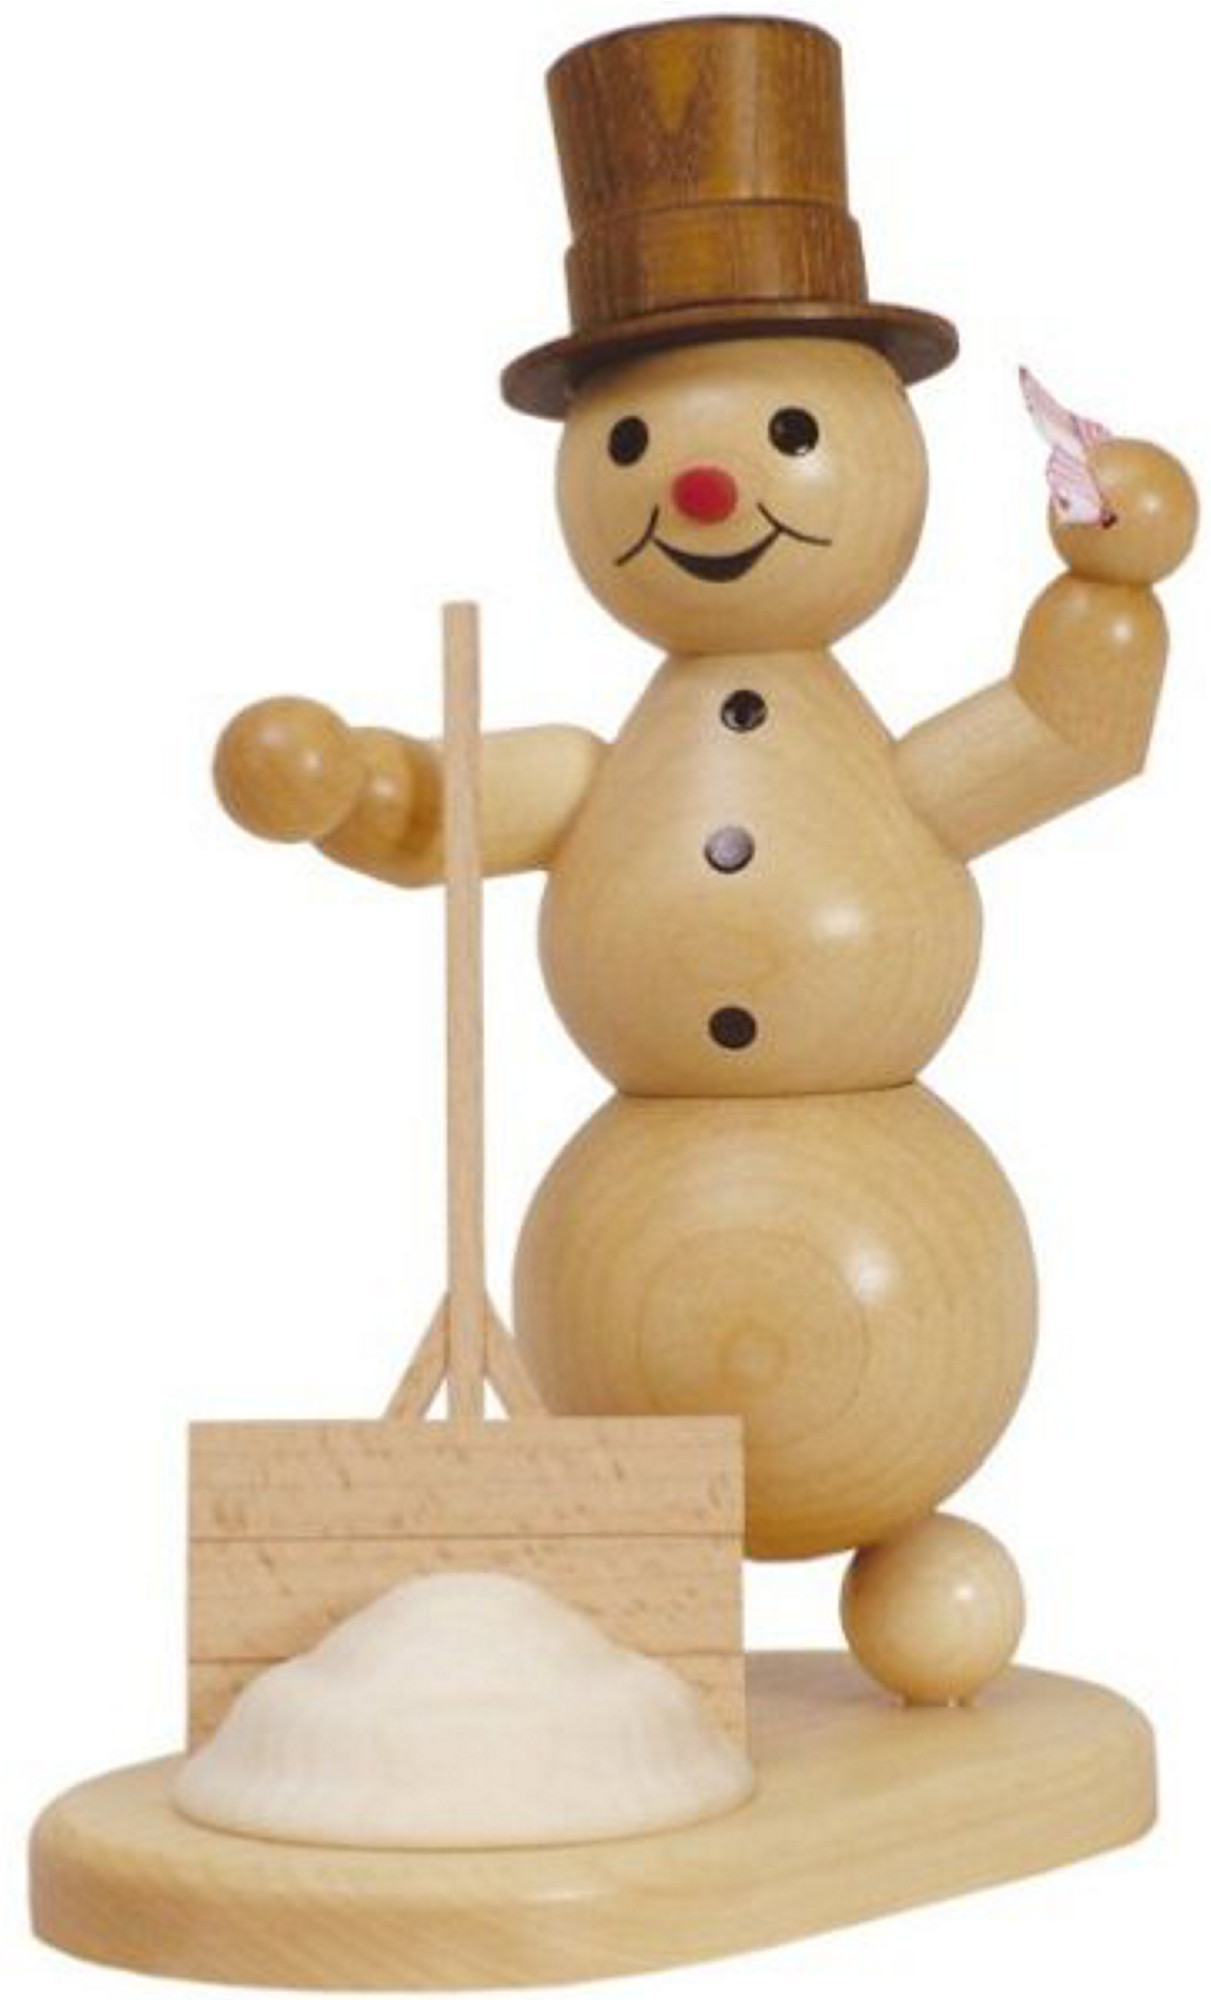 incense smoker, snowman with shovel and cloth